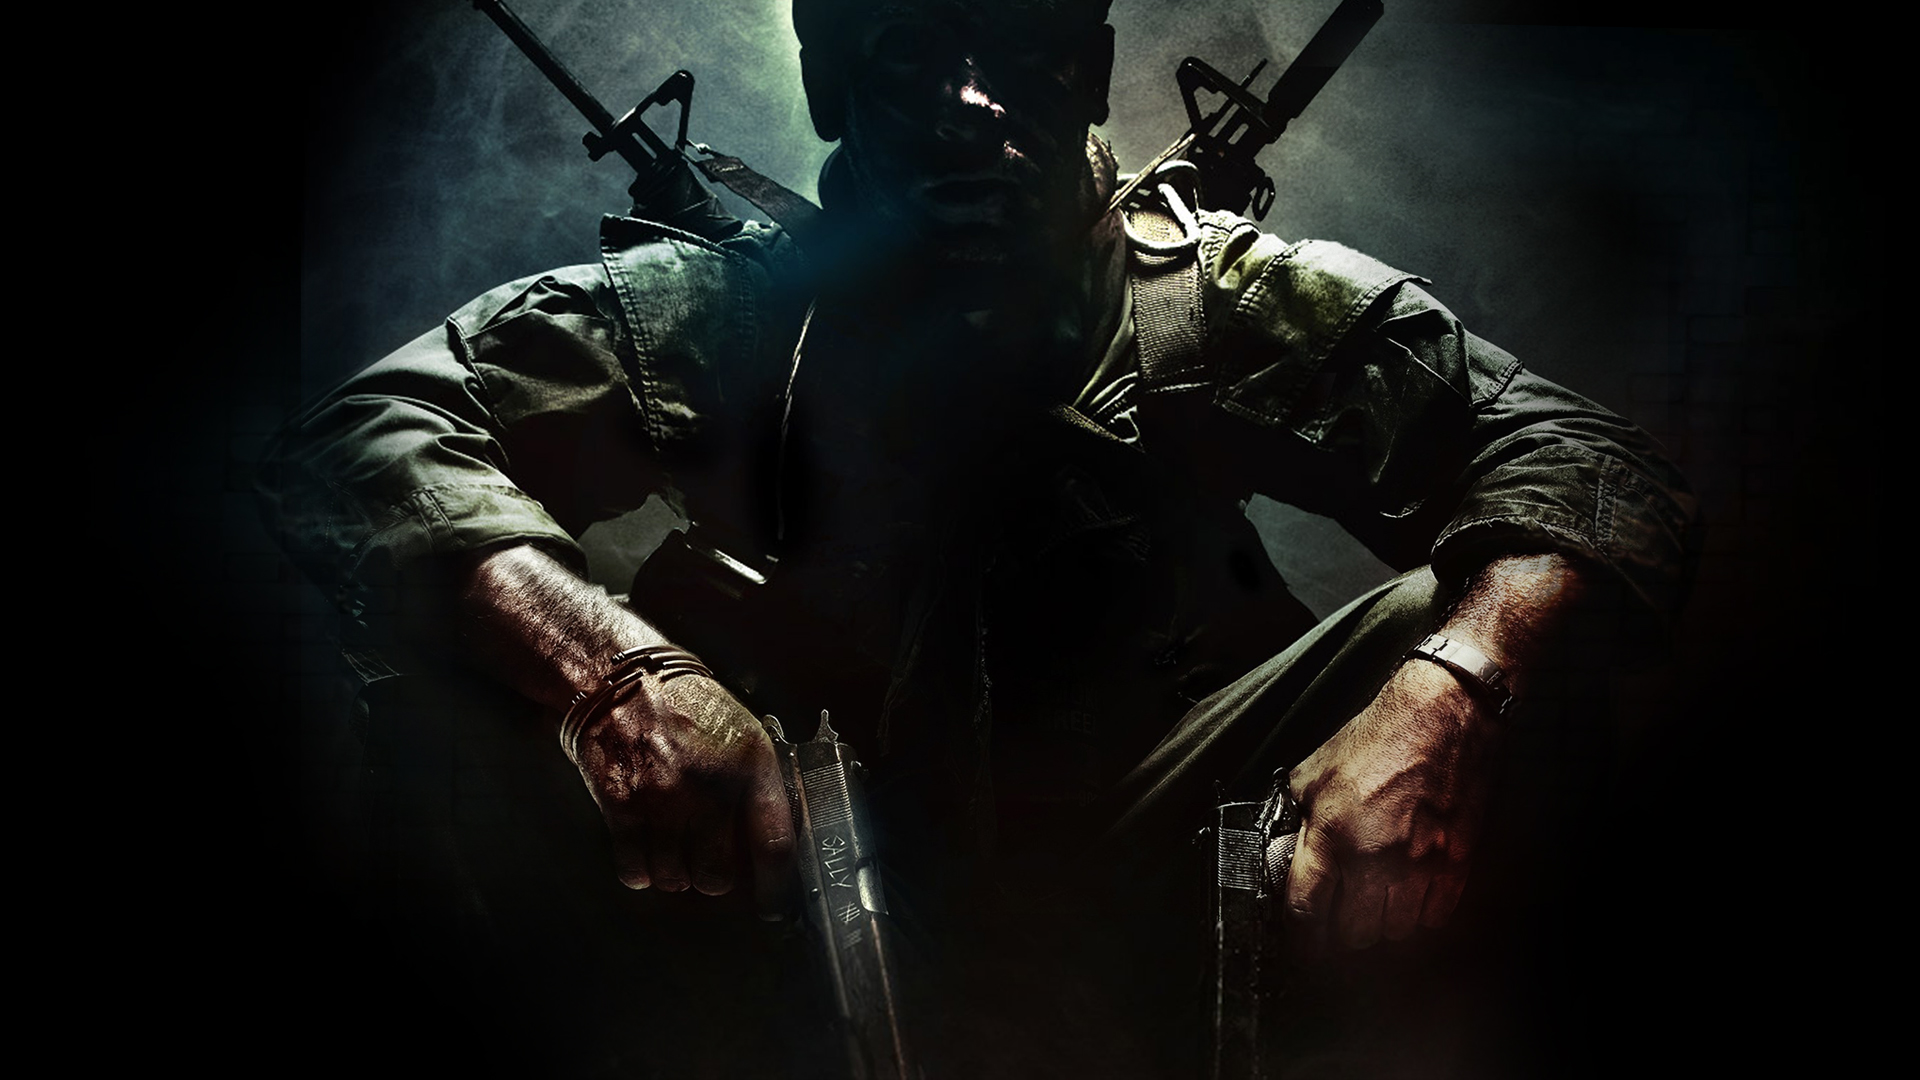 Call of Duty Black Ops Wallpaper   Videogames wallpaperCoolvibe 1920x1080